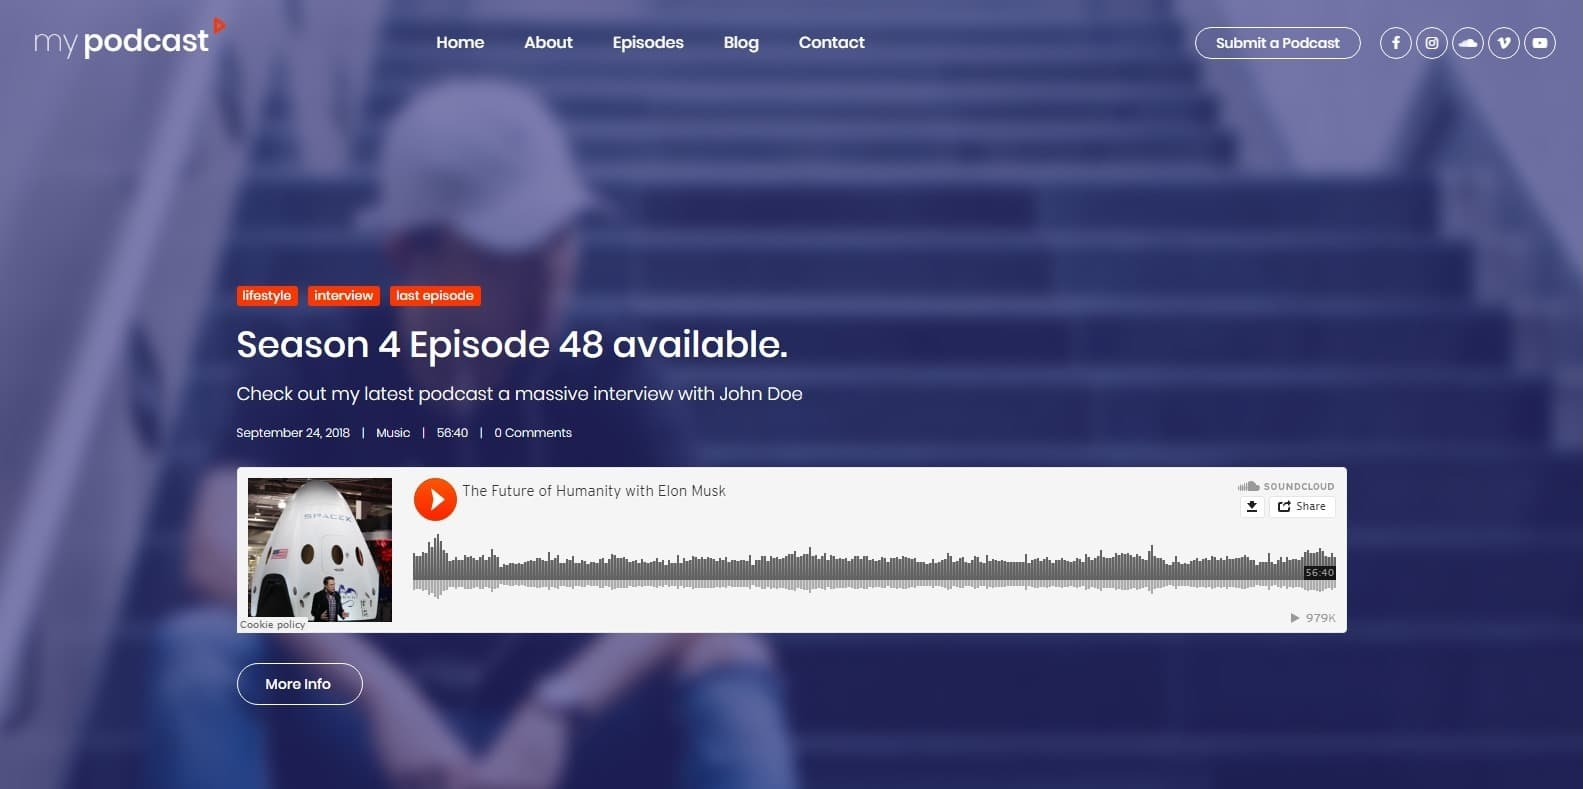 mypodcast-html-free-website-template